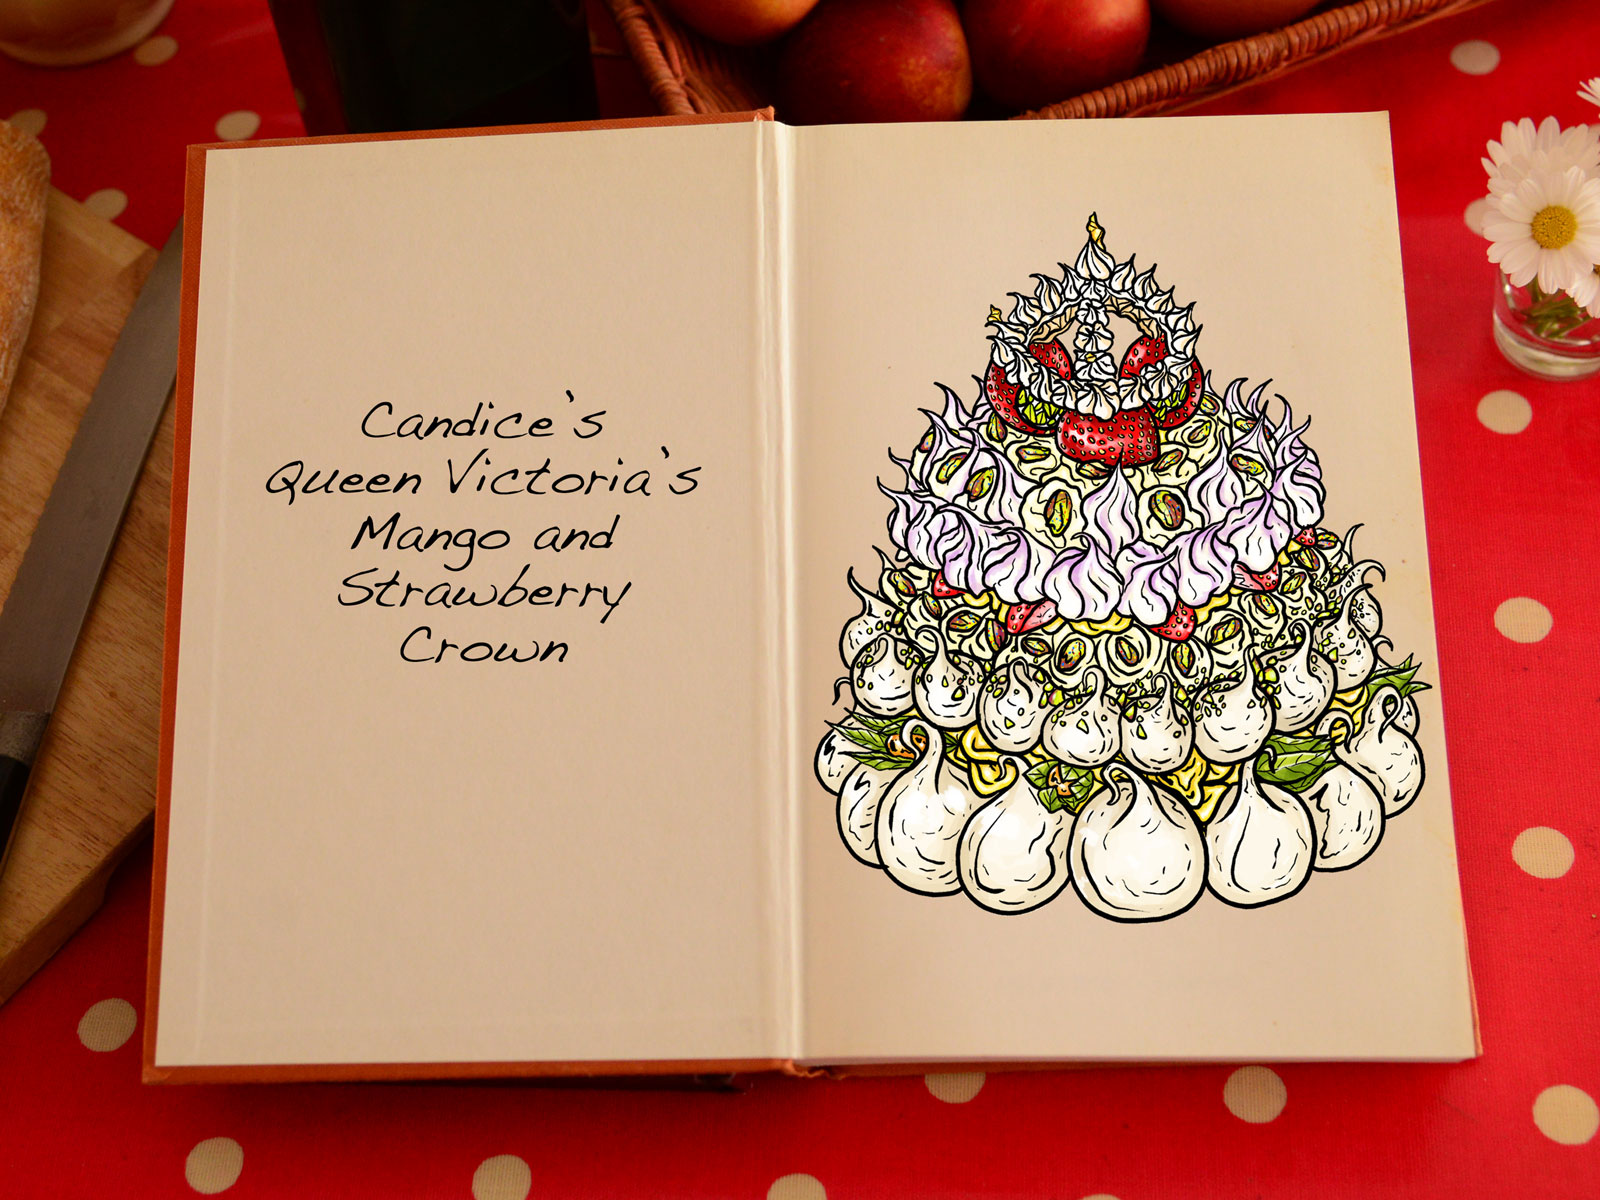 You Can Buy Those Cake Illustrations from 'The Great British Baking Show'